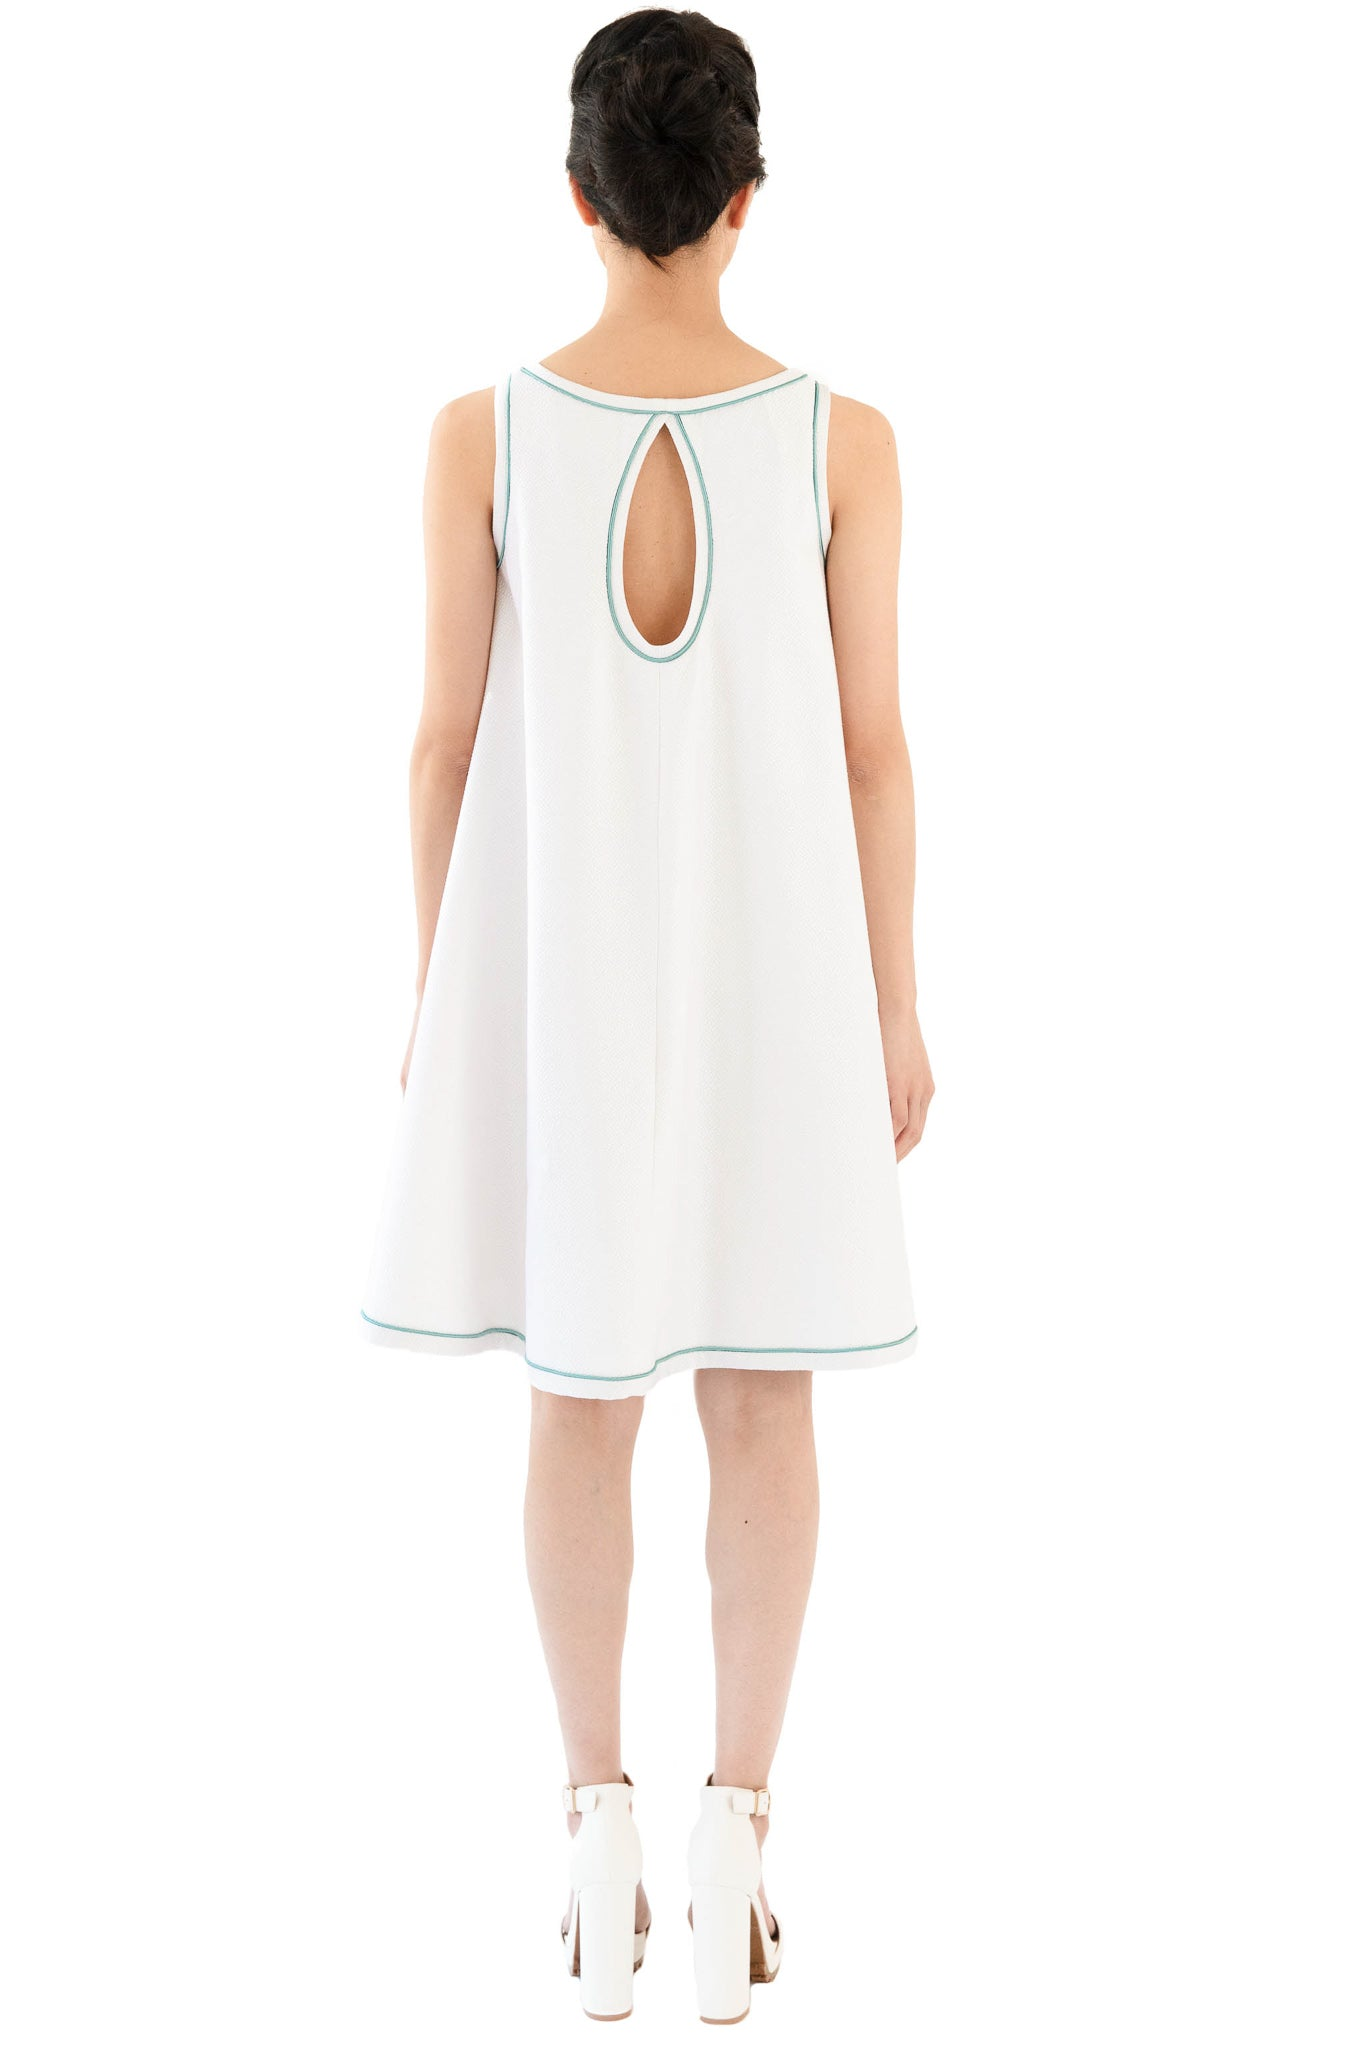 White sleeveless dress with blue trim